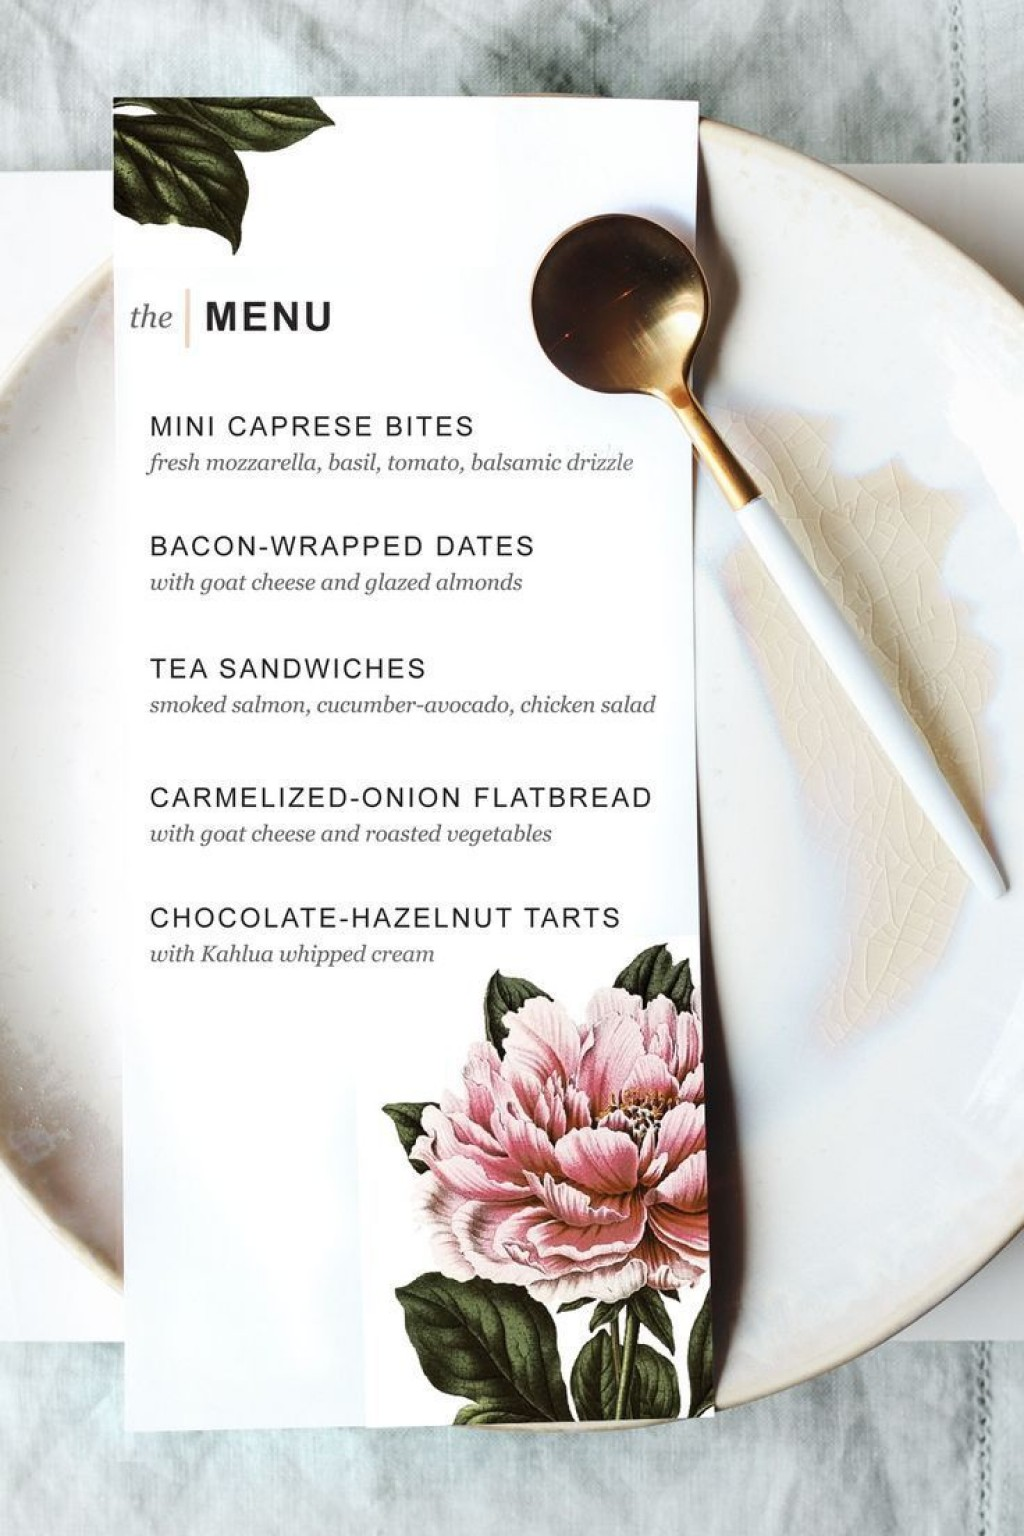 004 Archaicawful Dinner Party Menu Template Idea  Word Elegant Free Google DocLarge